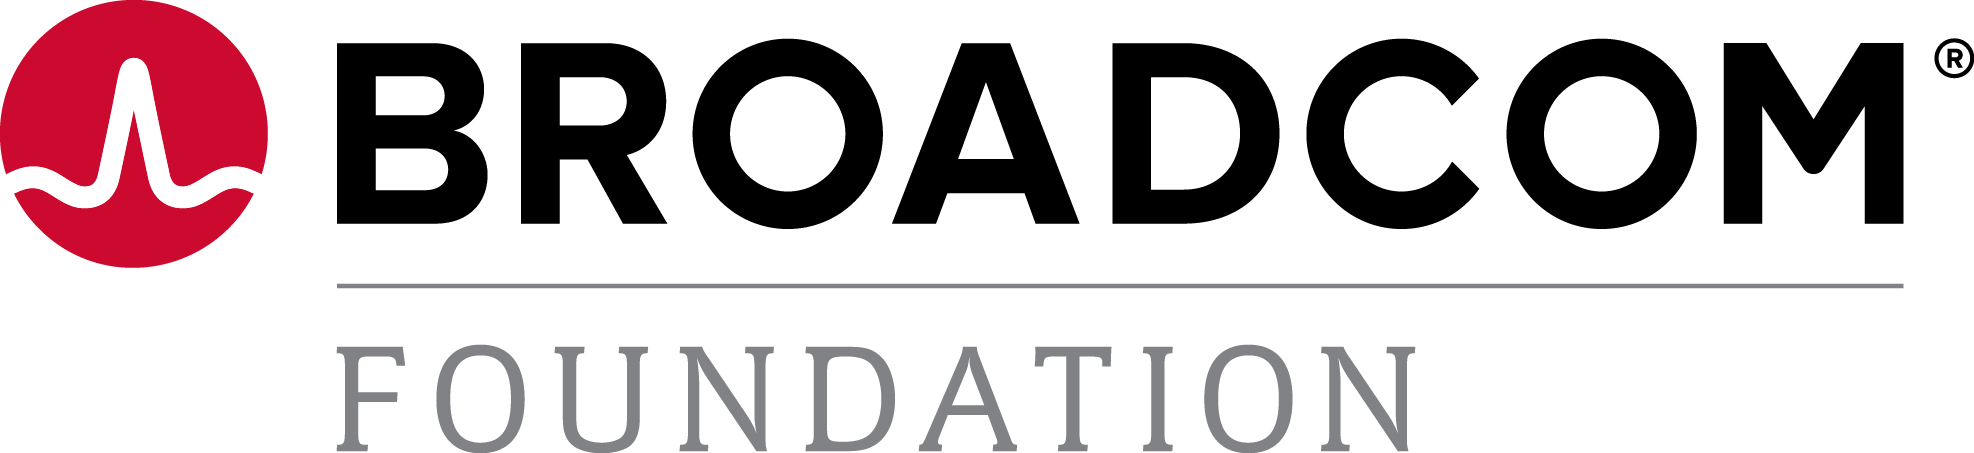 Broadcom Foundation